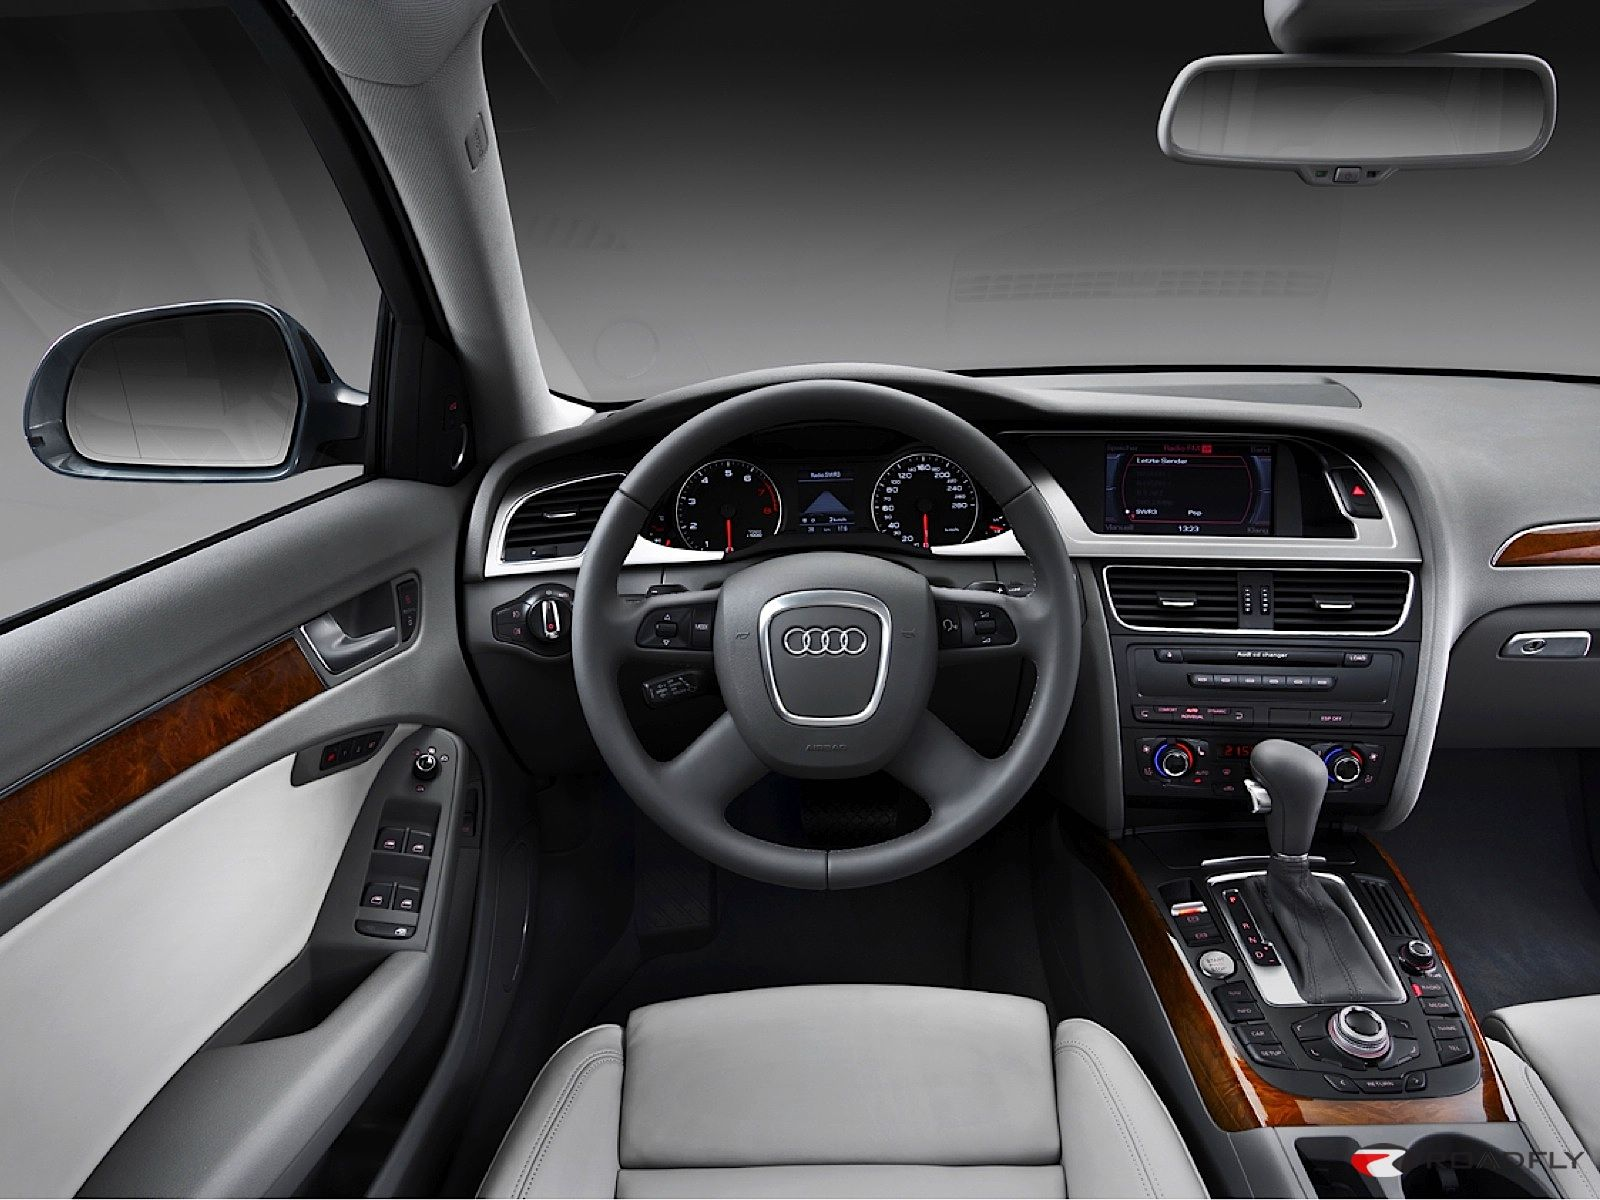 B8 Audi A4 Avant Interior | Cars | Pinterest | Audi, Audi a4 and Cars